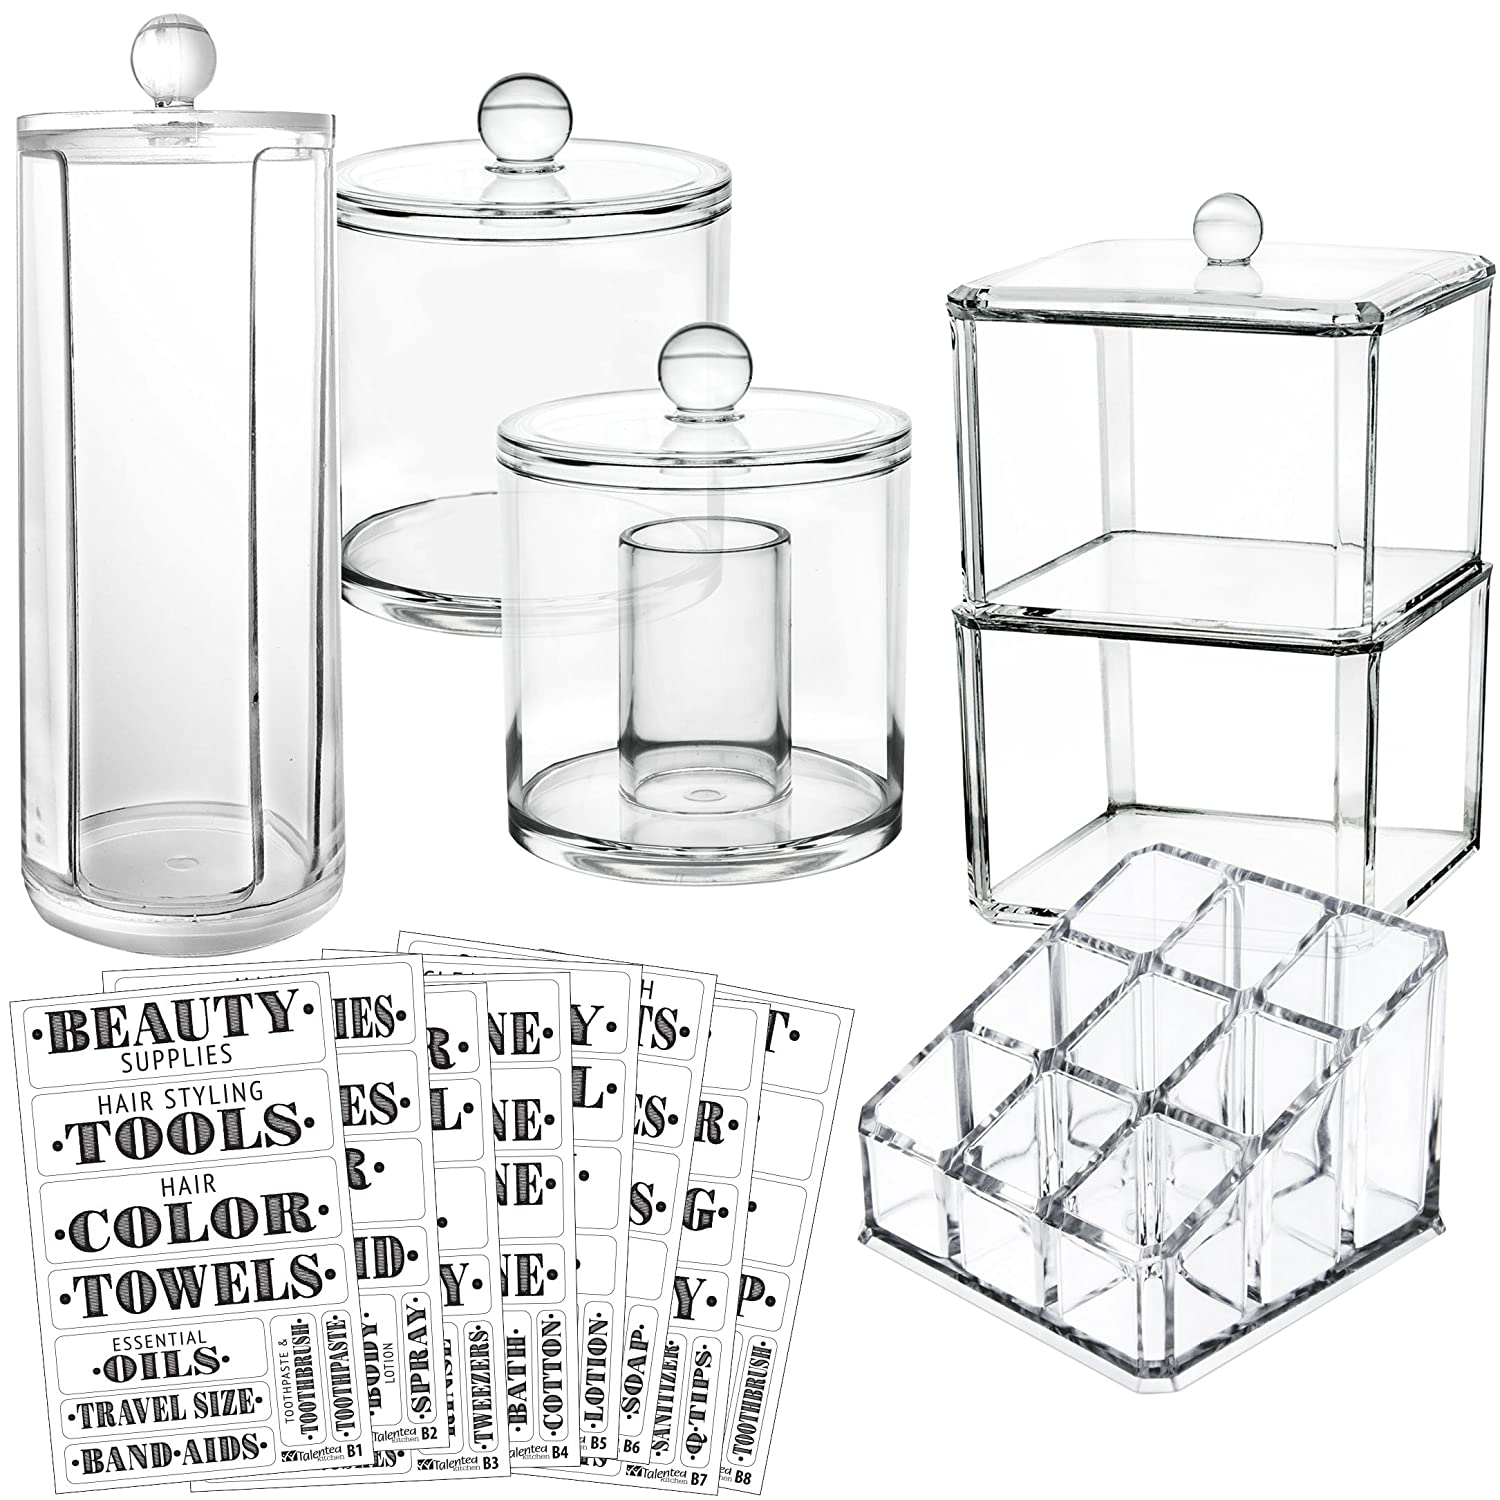 Talented Kitchen Bathroom Organizer Container Set. Complete Storage: 5 Canister Jars & 72 Preprinted Labels. Acrylic Makeup Organizers f/Countertop Vanity Cabinet. Make Up Cotton Ball QTip Swab Holder